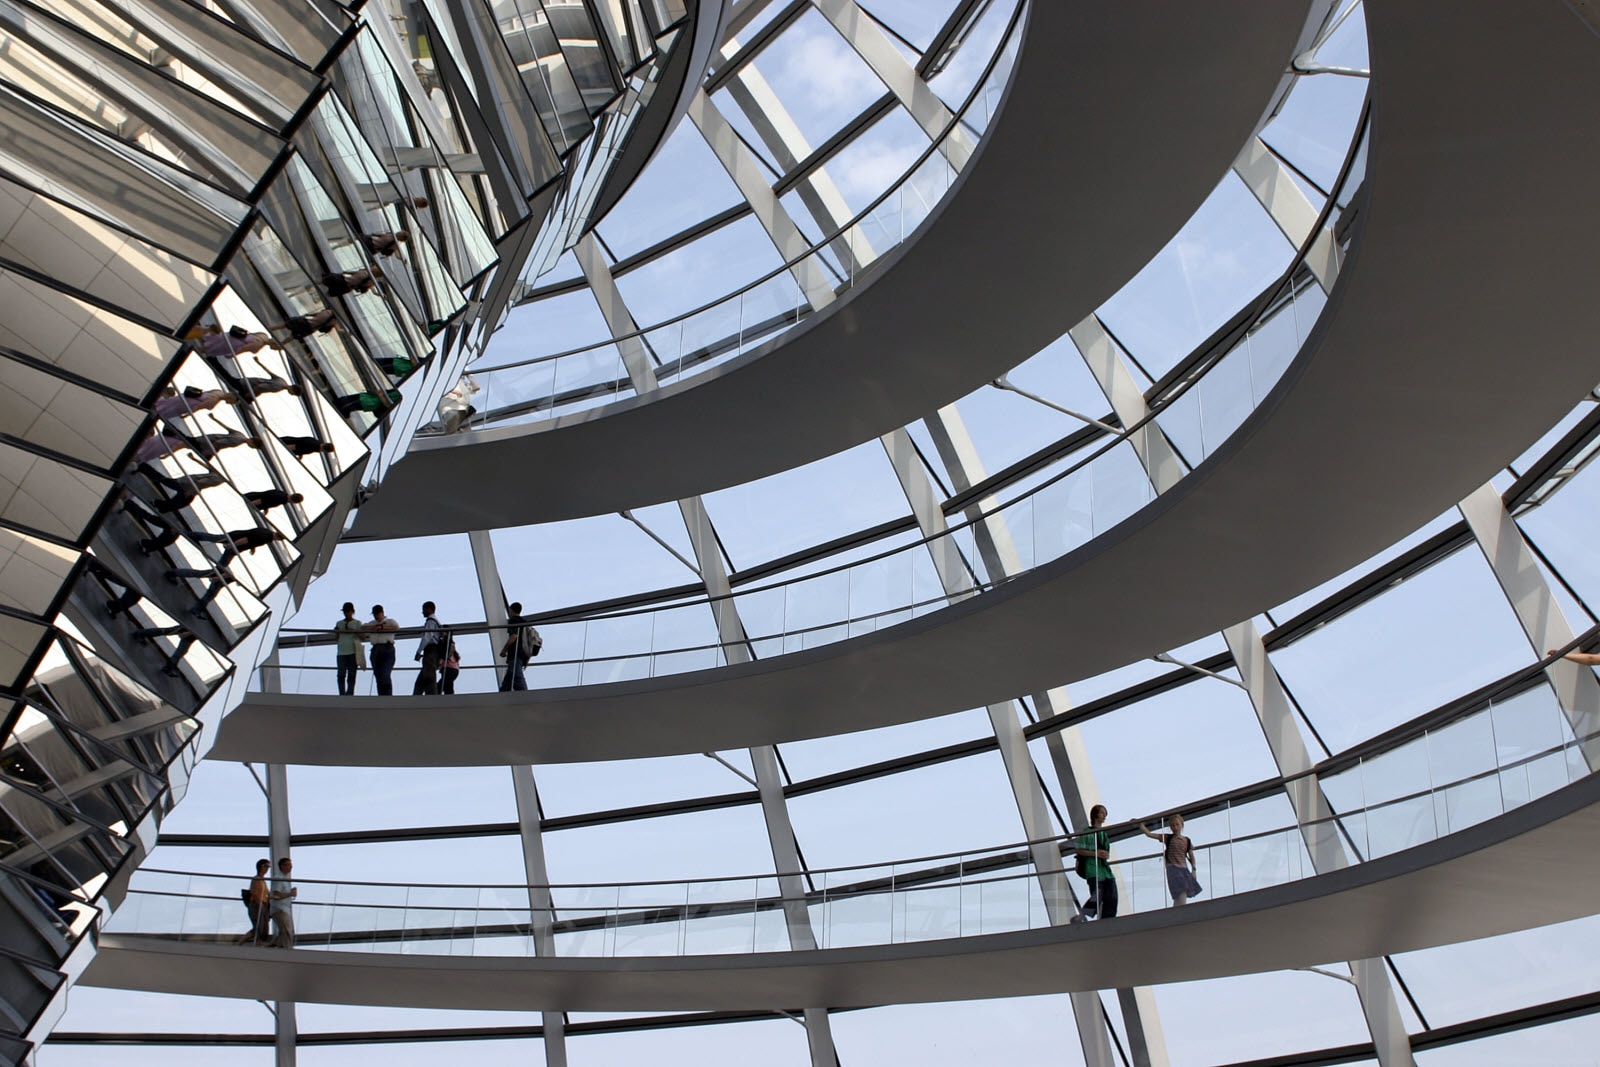 Reichstag in Berlin, Germany